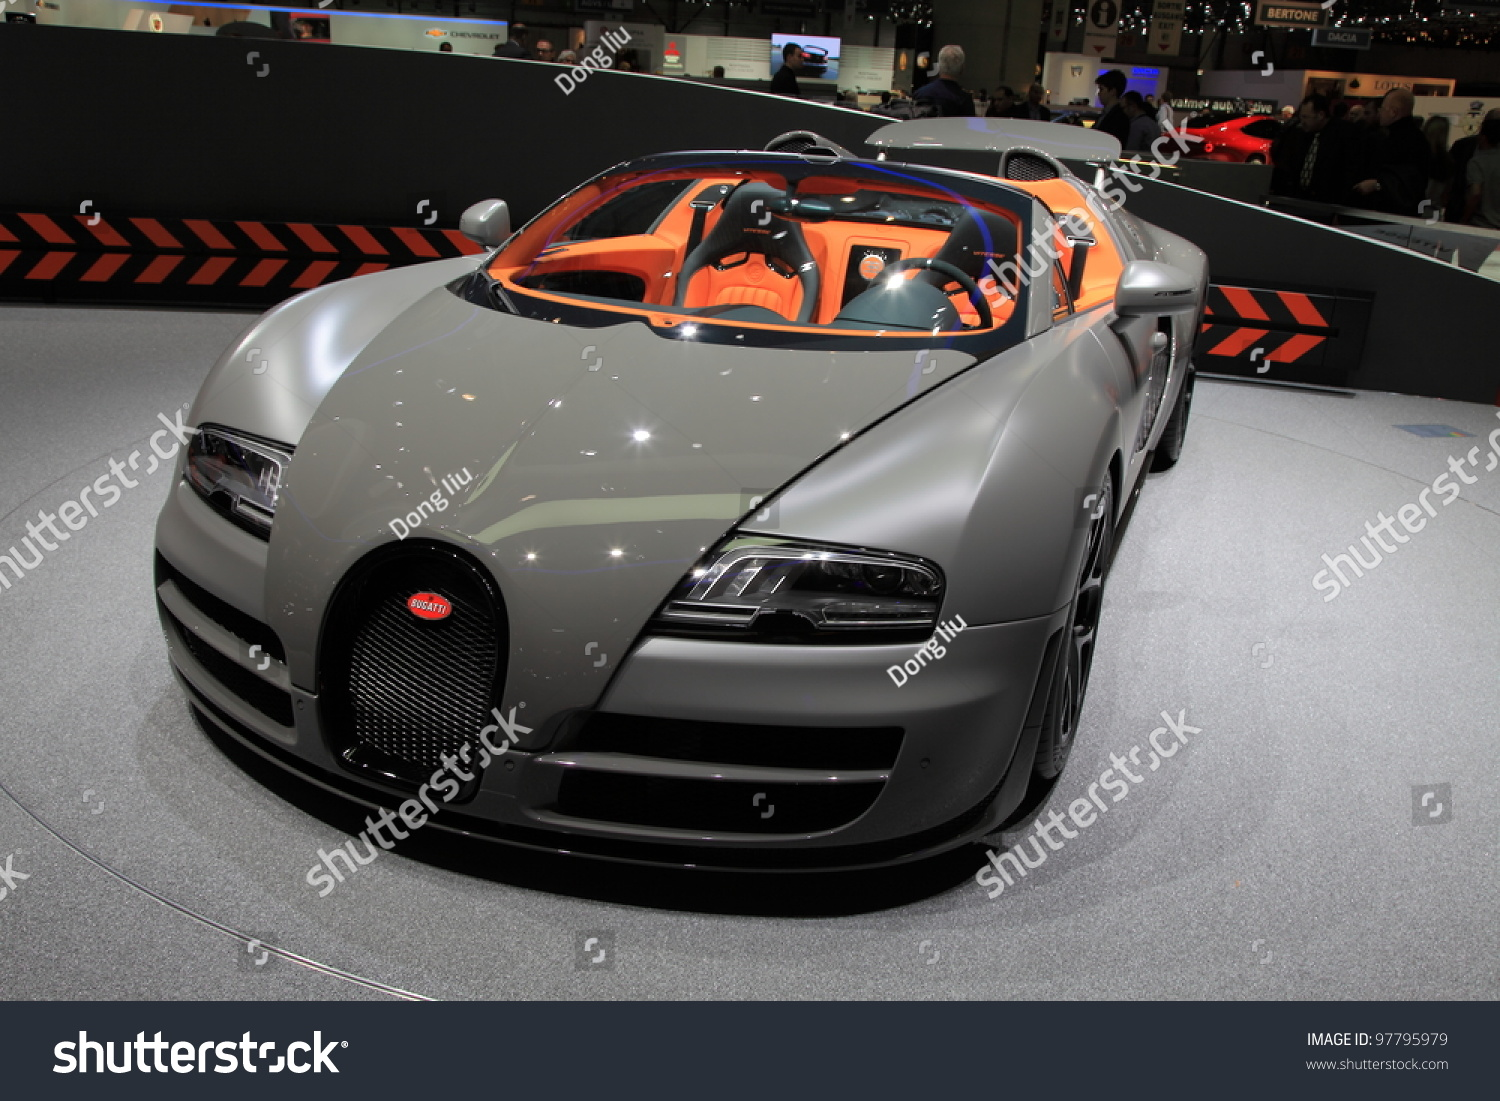 geneva march 8 a bugatti veyron grand sport vitesse car on display at 82th. Black Bedroom Furniture Sets. Home Design Ideas